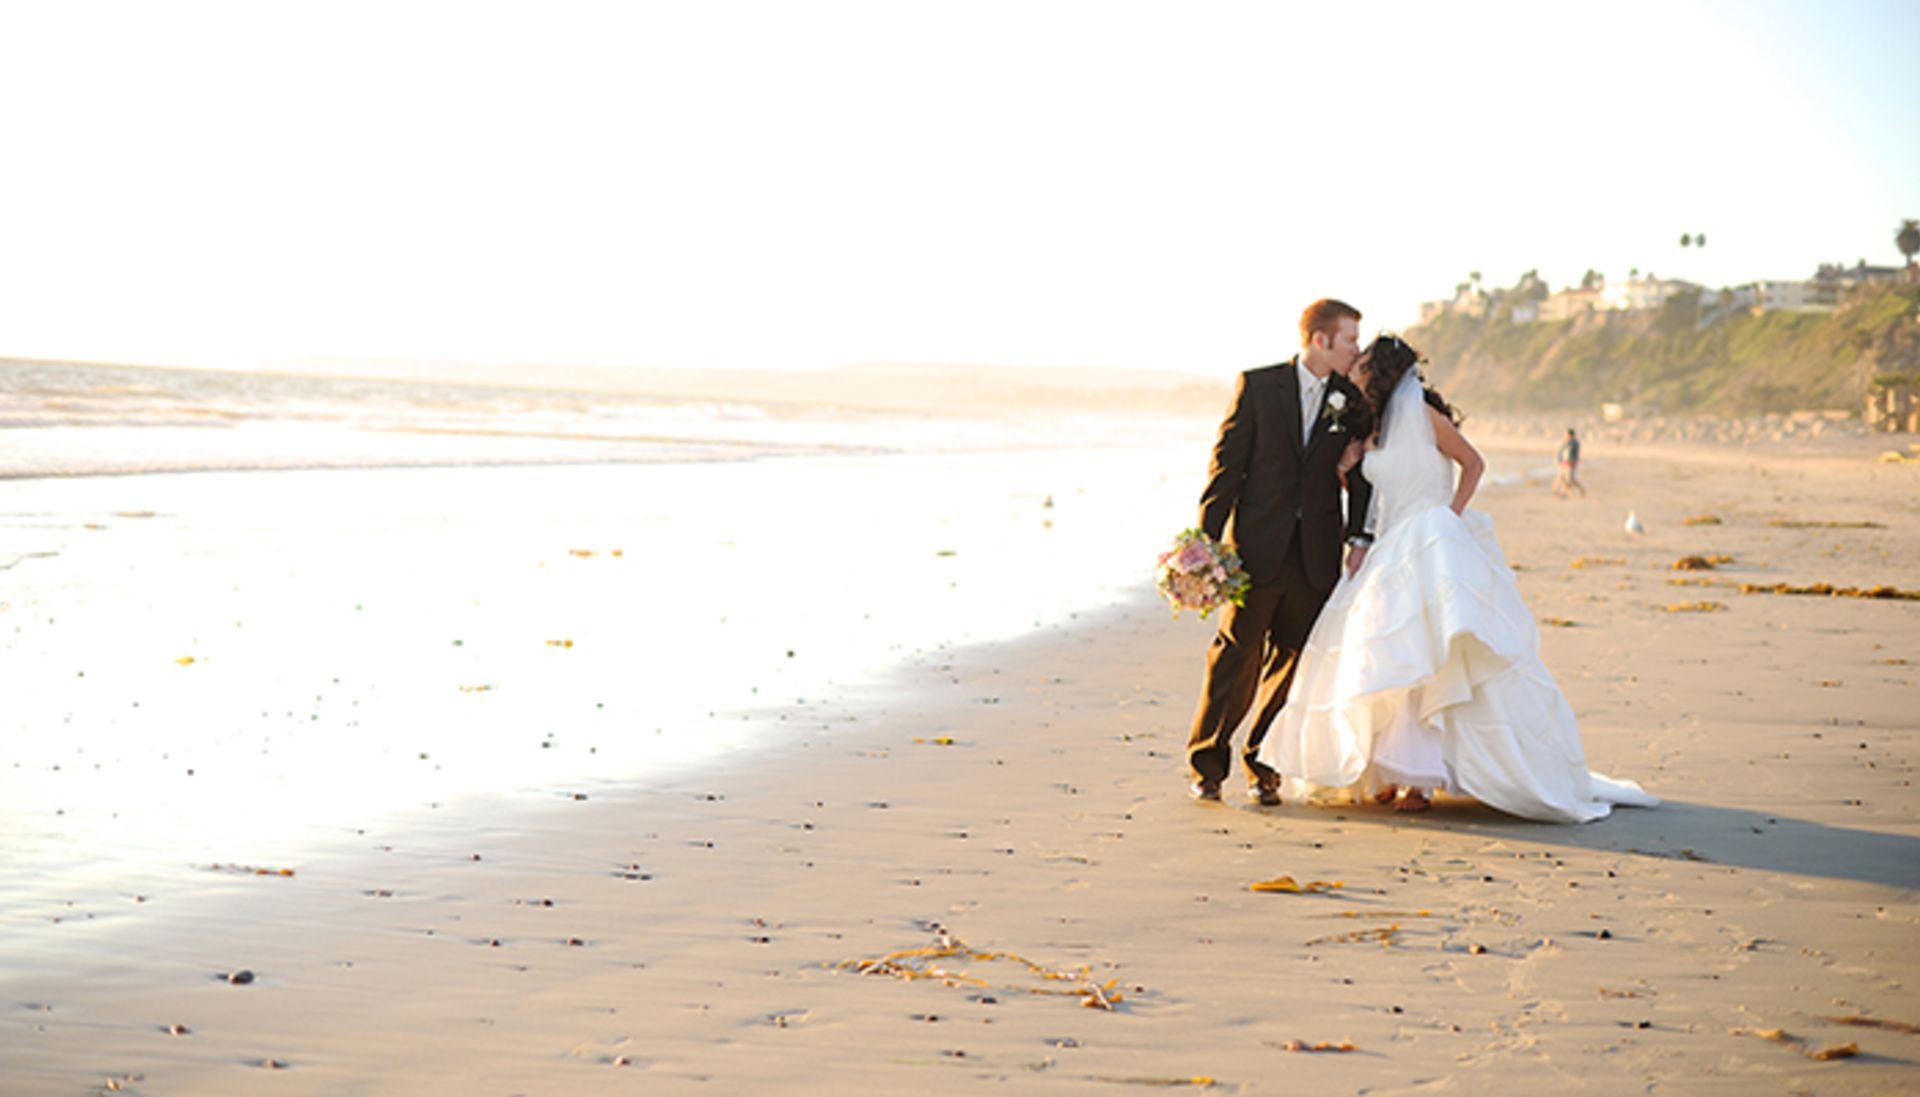 Tying the knot in Newport Beach